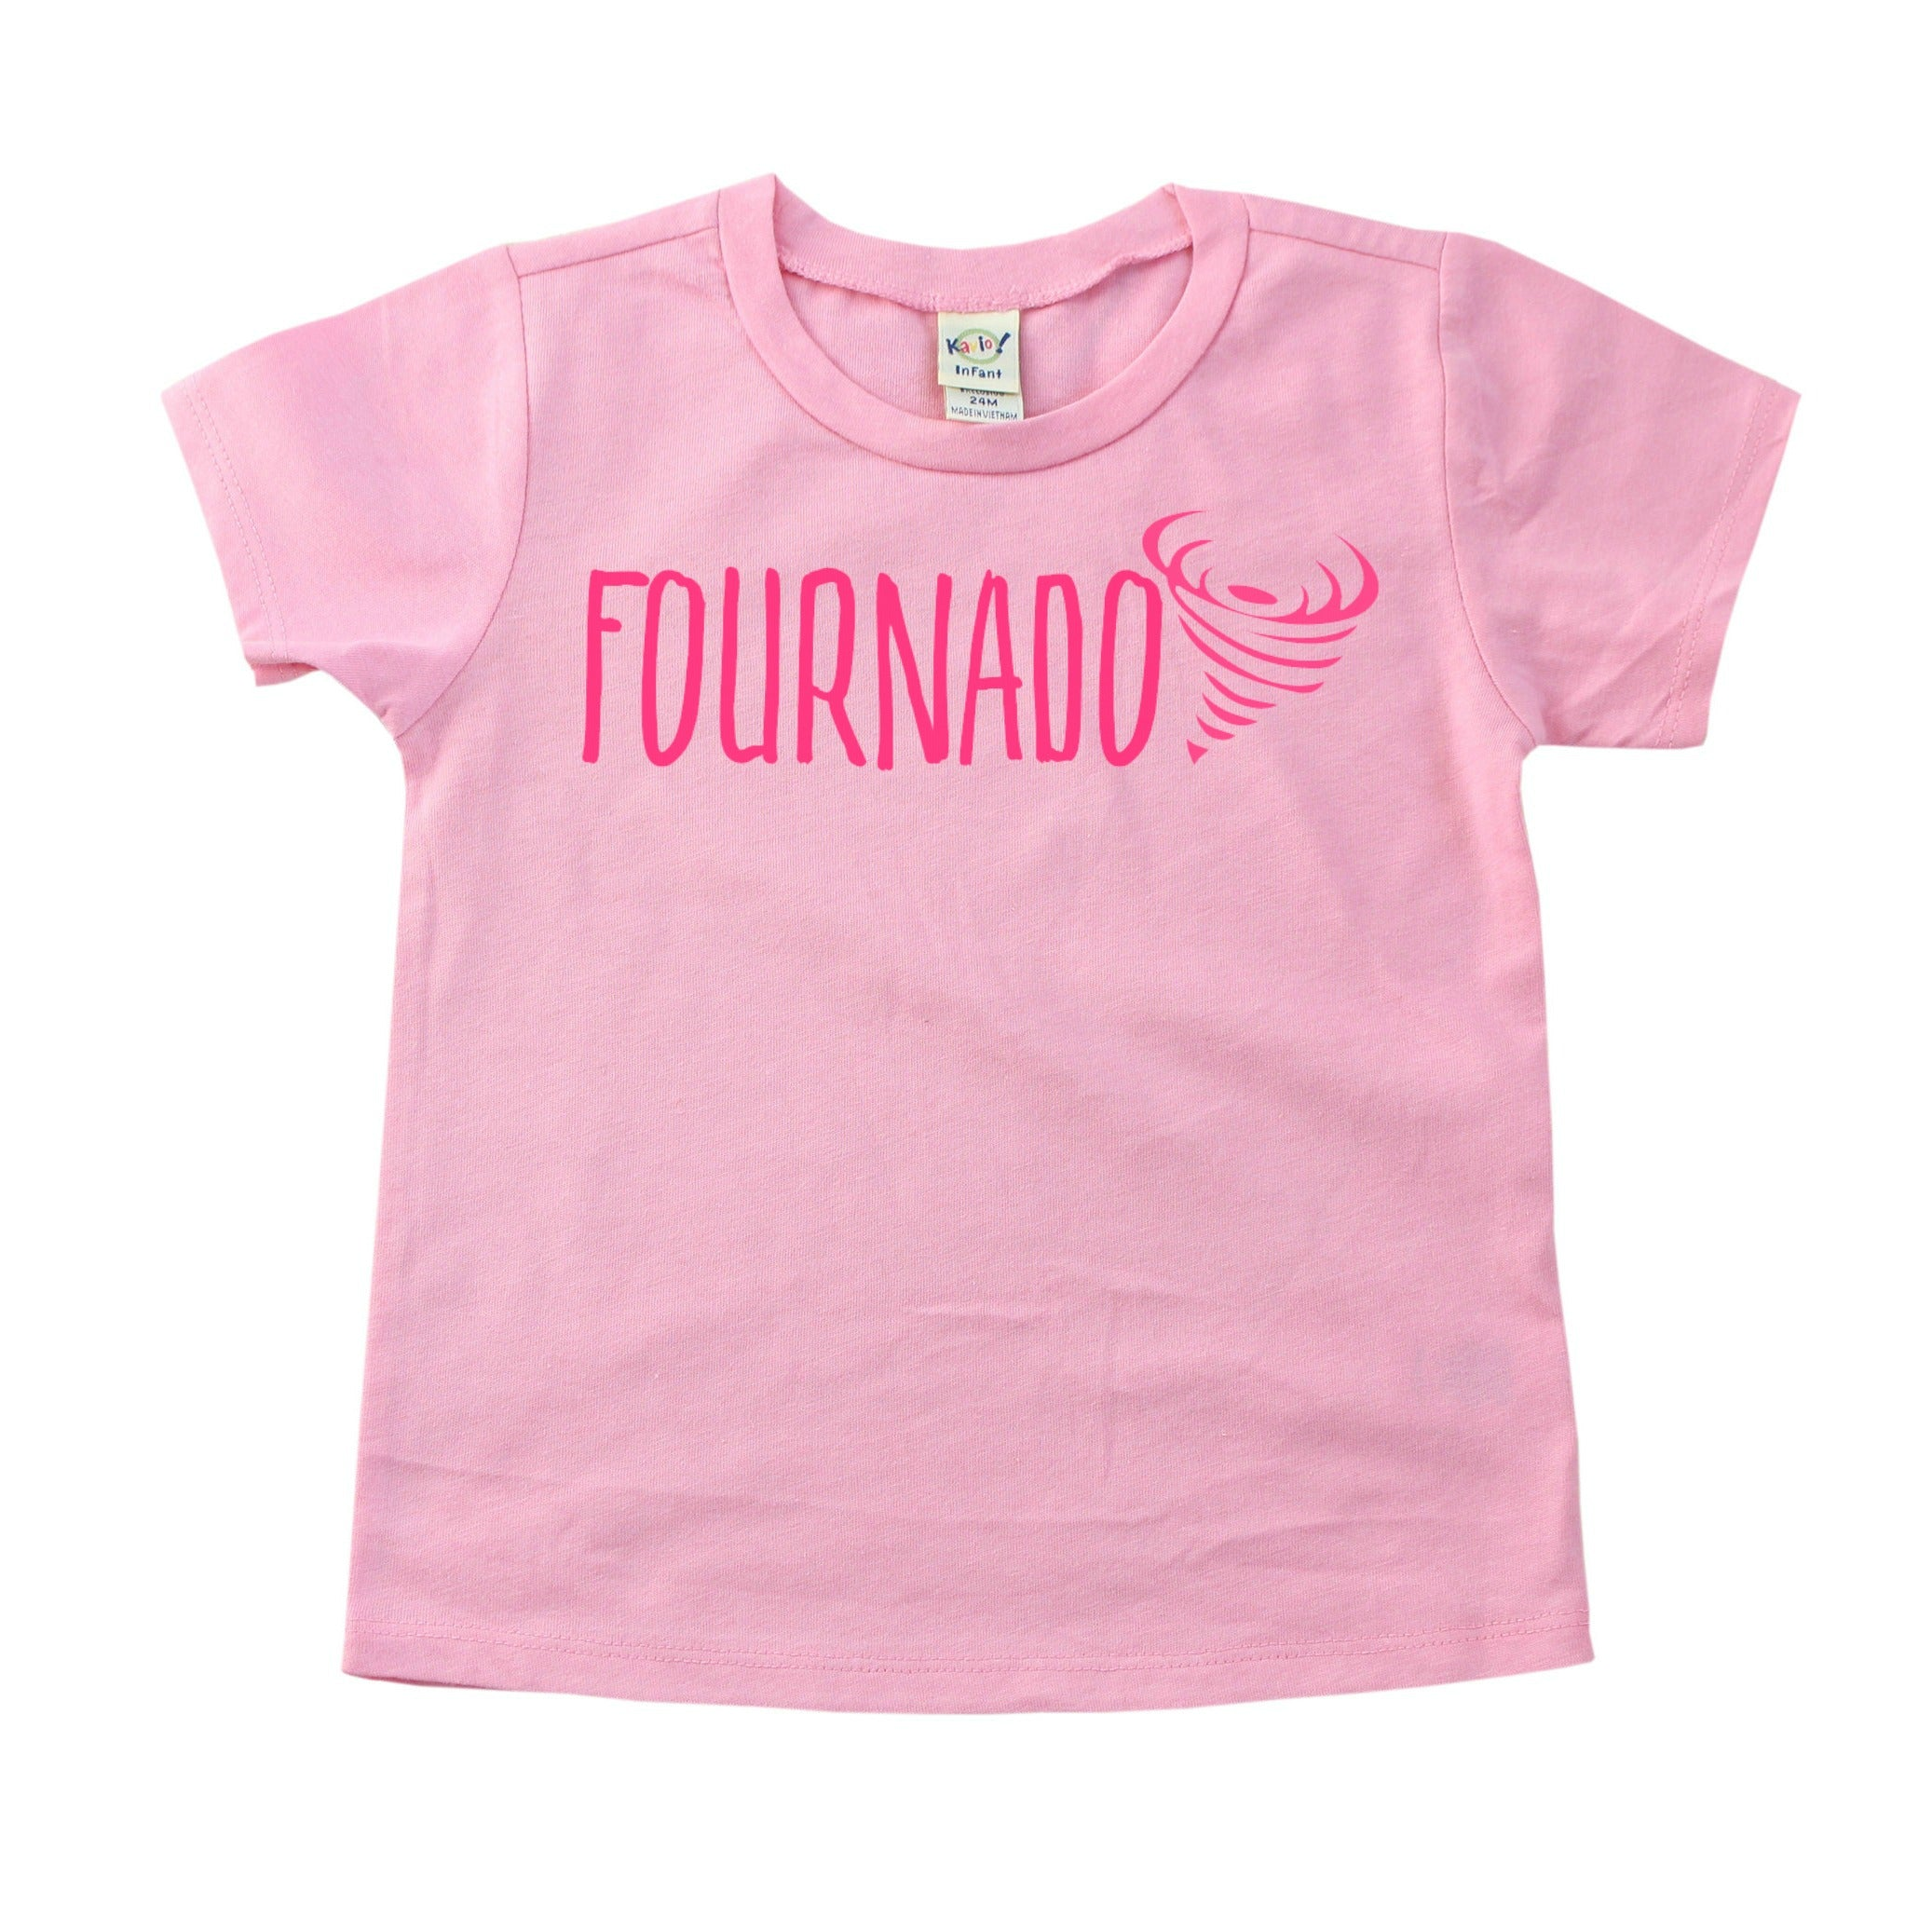 Fournado Fourth Birthday Shirt